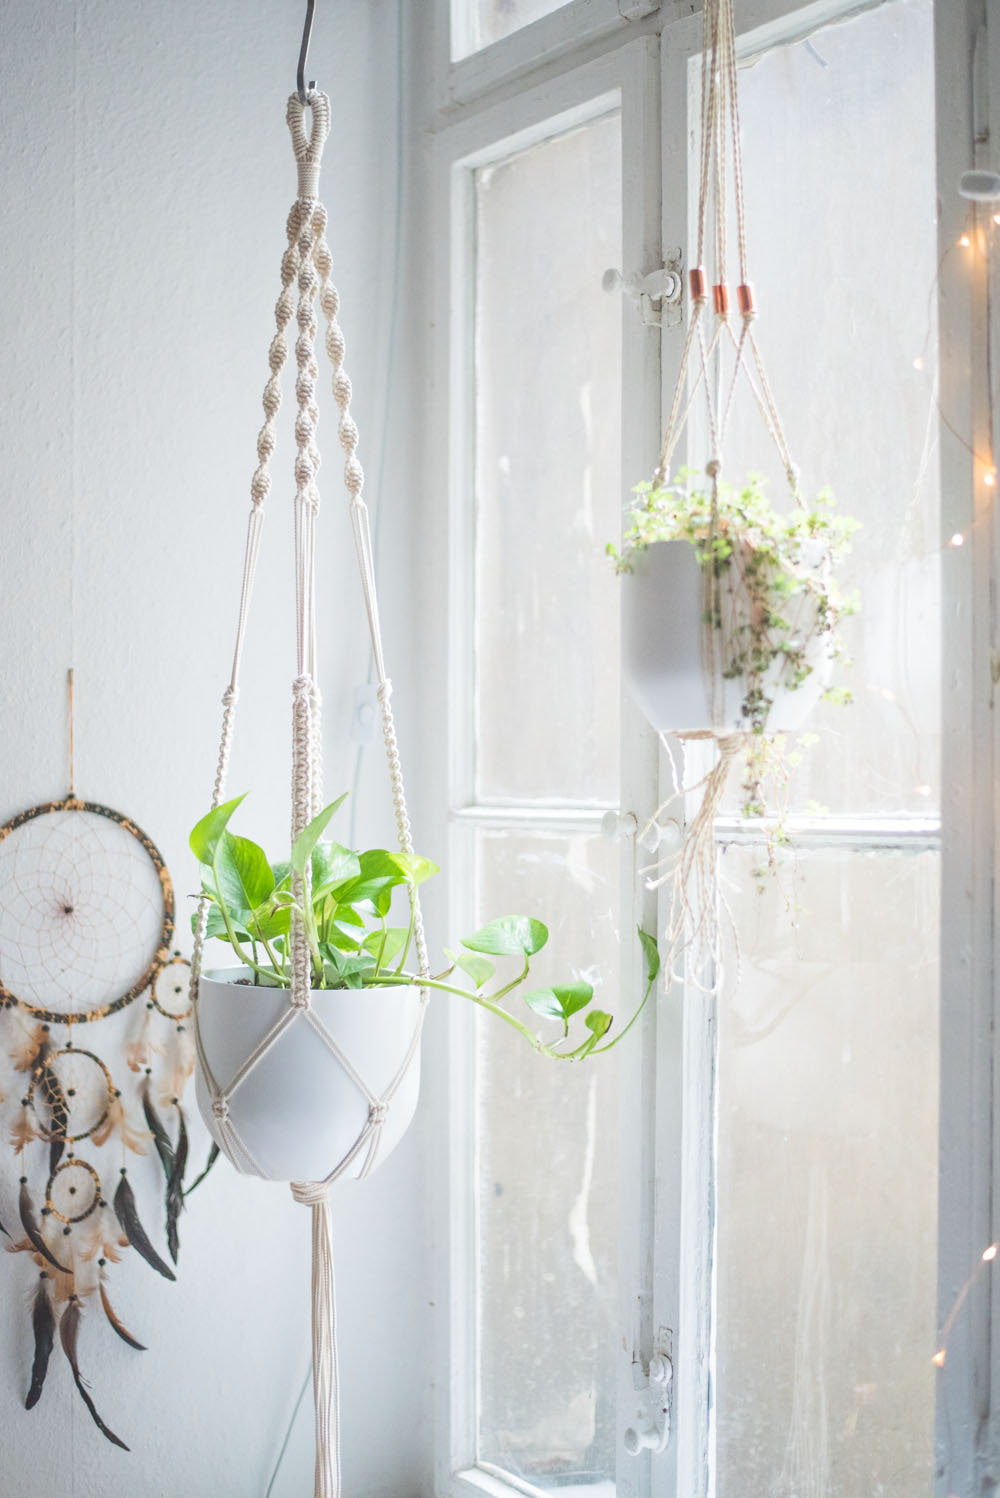 photo regarding Free Printable Macrame Plant Hanger Patterns named Uncomplicated Residence-Do it yourself: Macrame Plant Hanger Guideline - heylilahey.